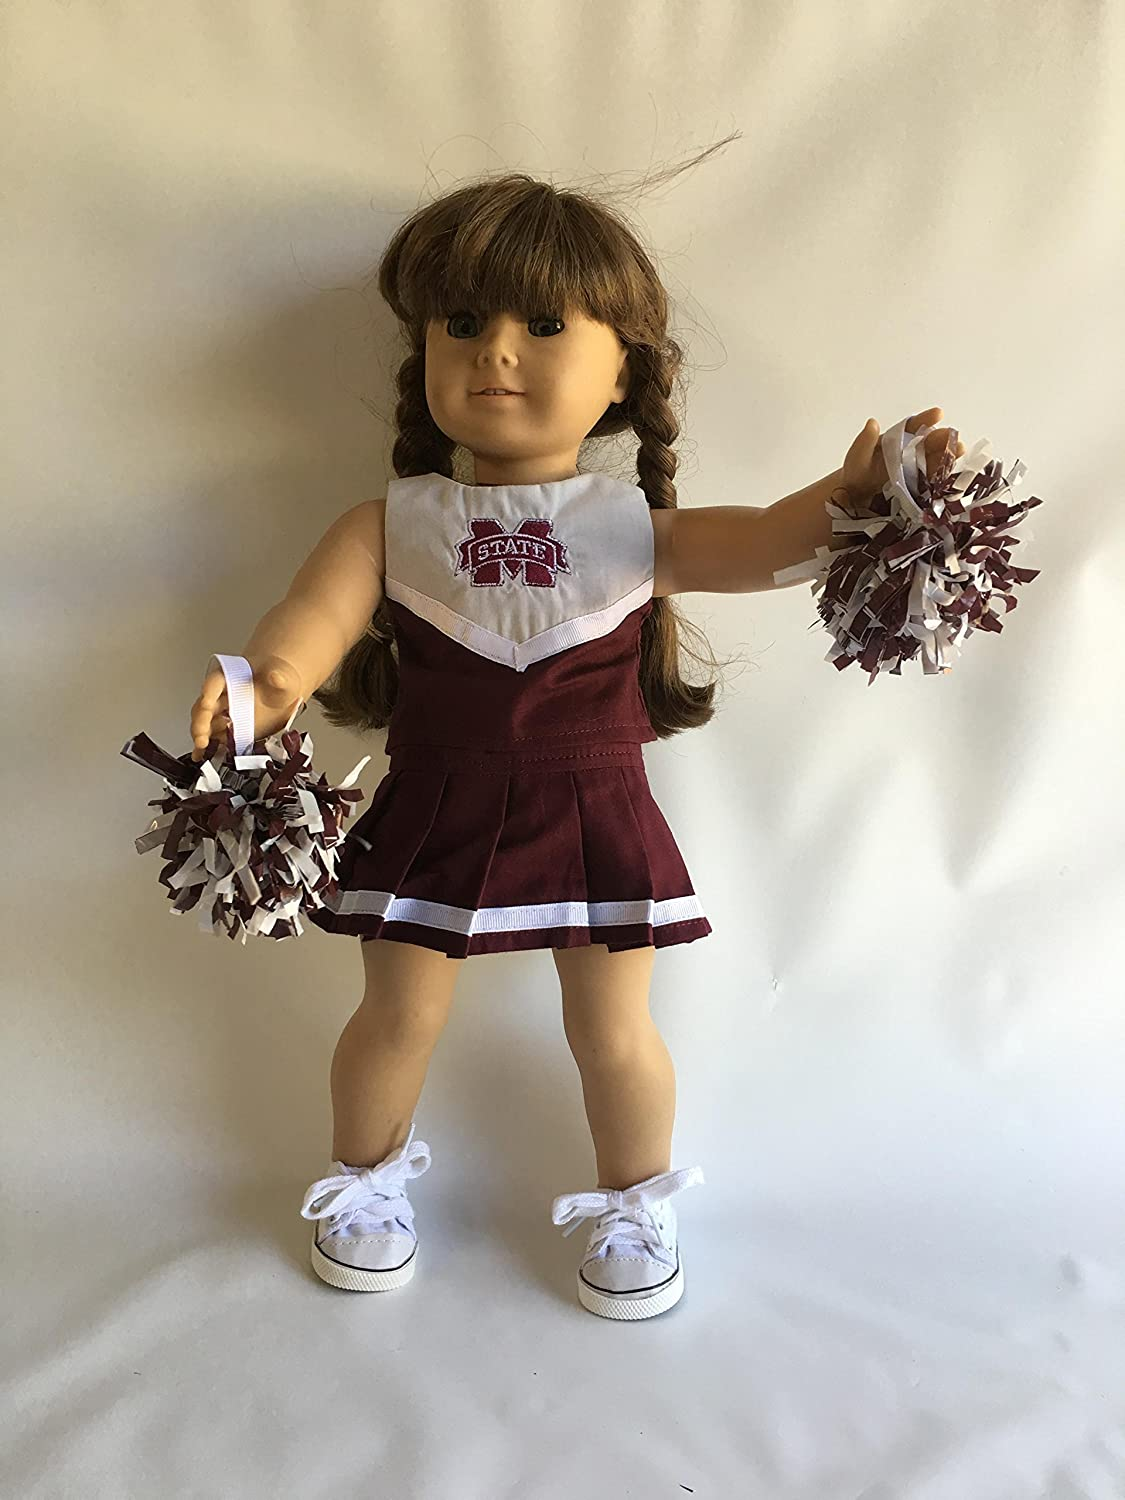 18' Doll Cheerleading Outfit - Maroon and White for University of Ms